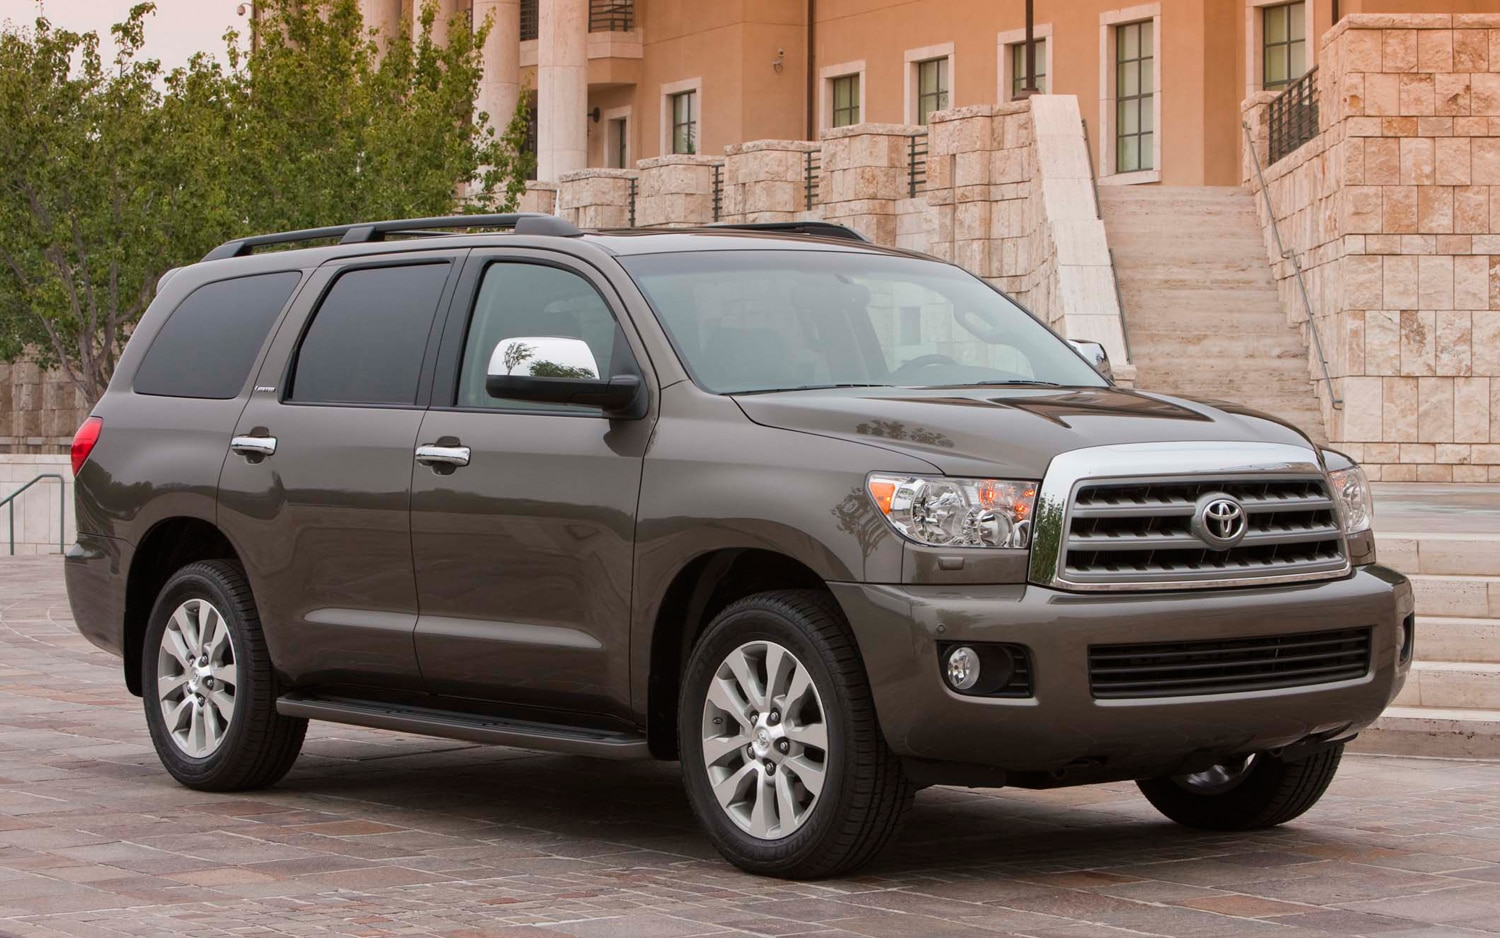 2011 Toyota Sequoia Front Three Quarter5